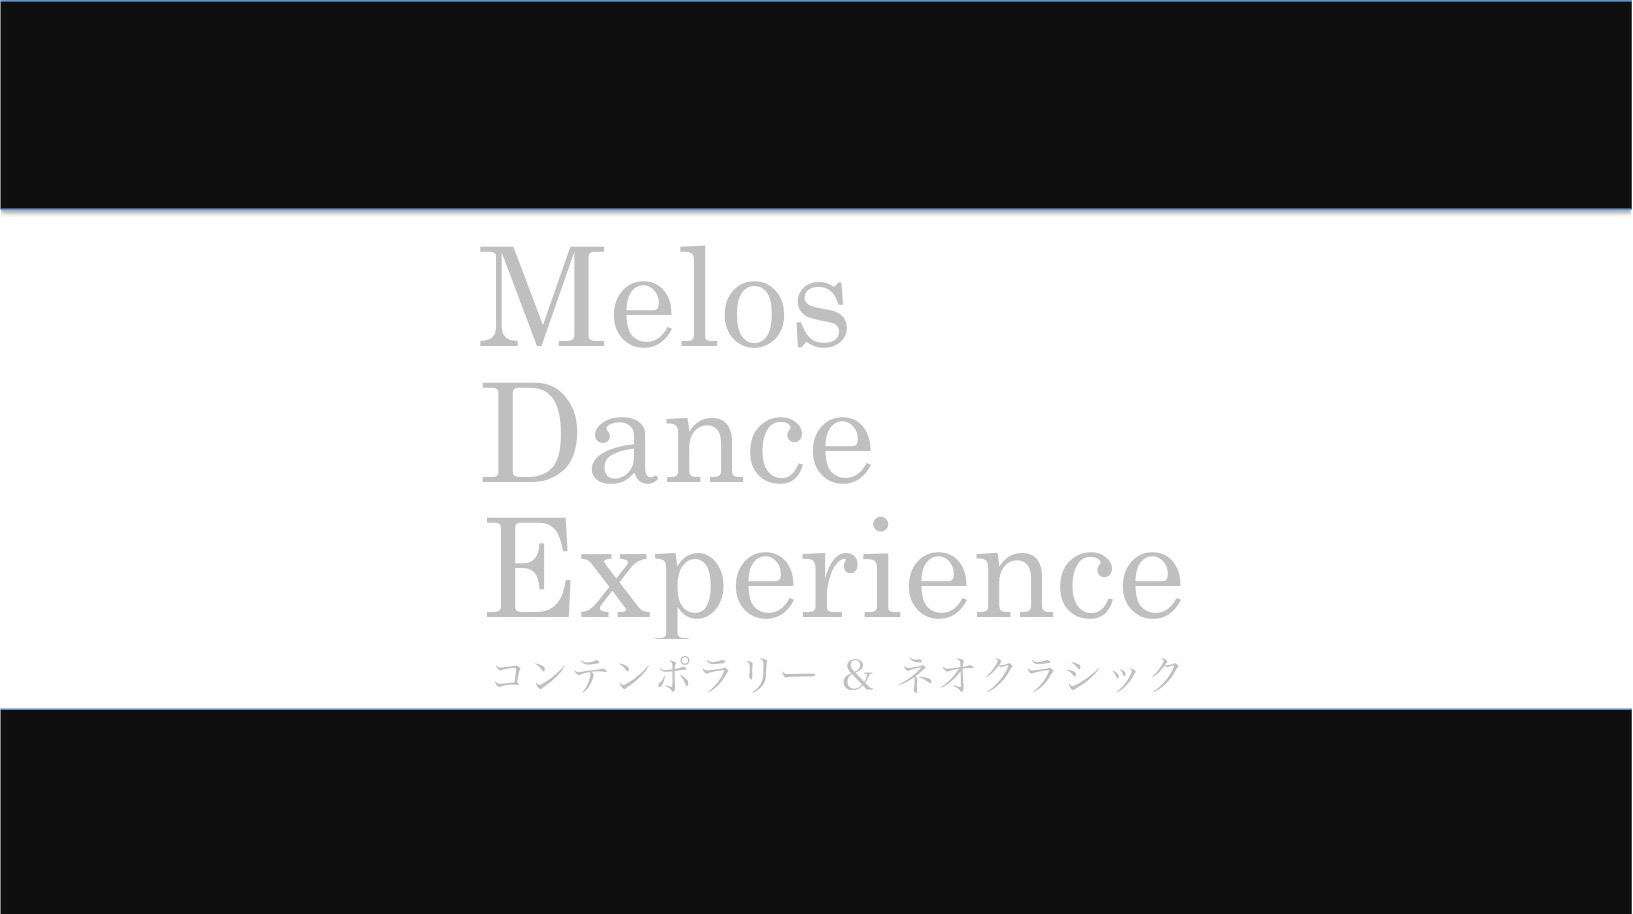 Melos Dance Experience 今後の活動についてのお知らせ